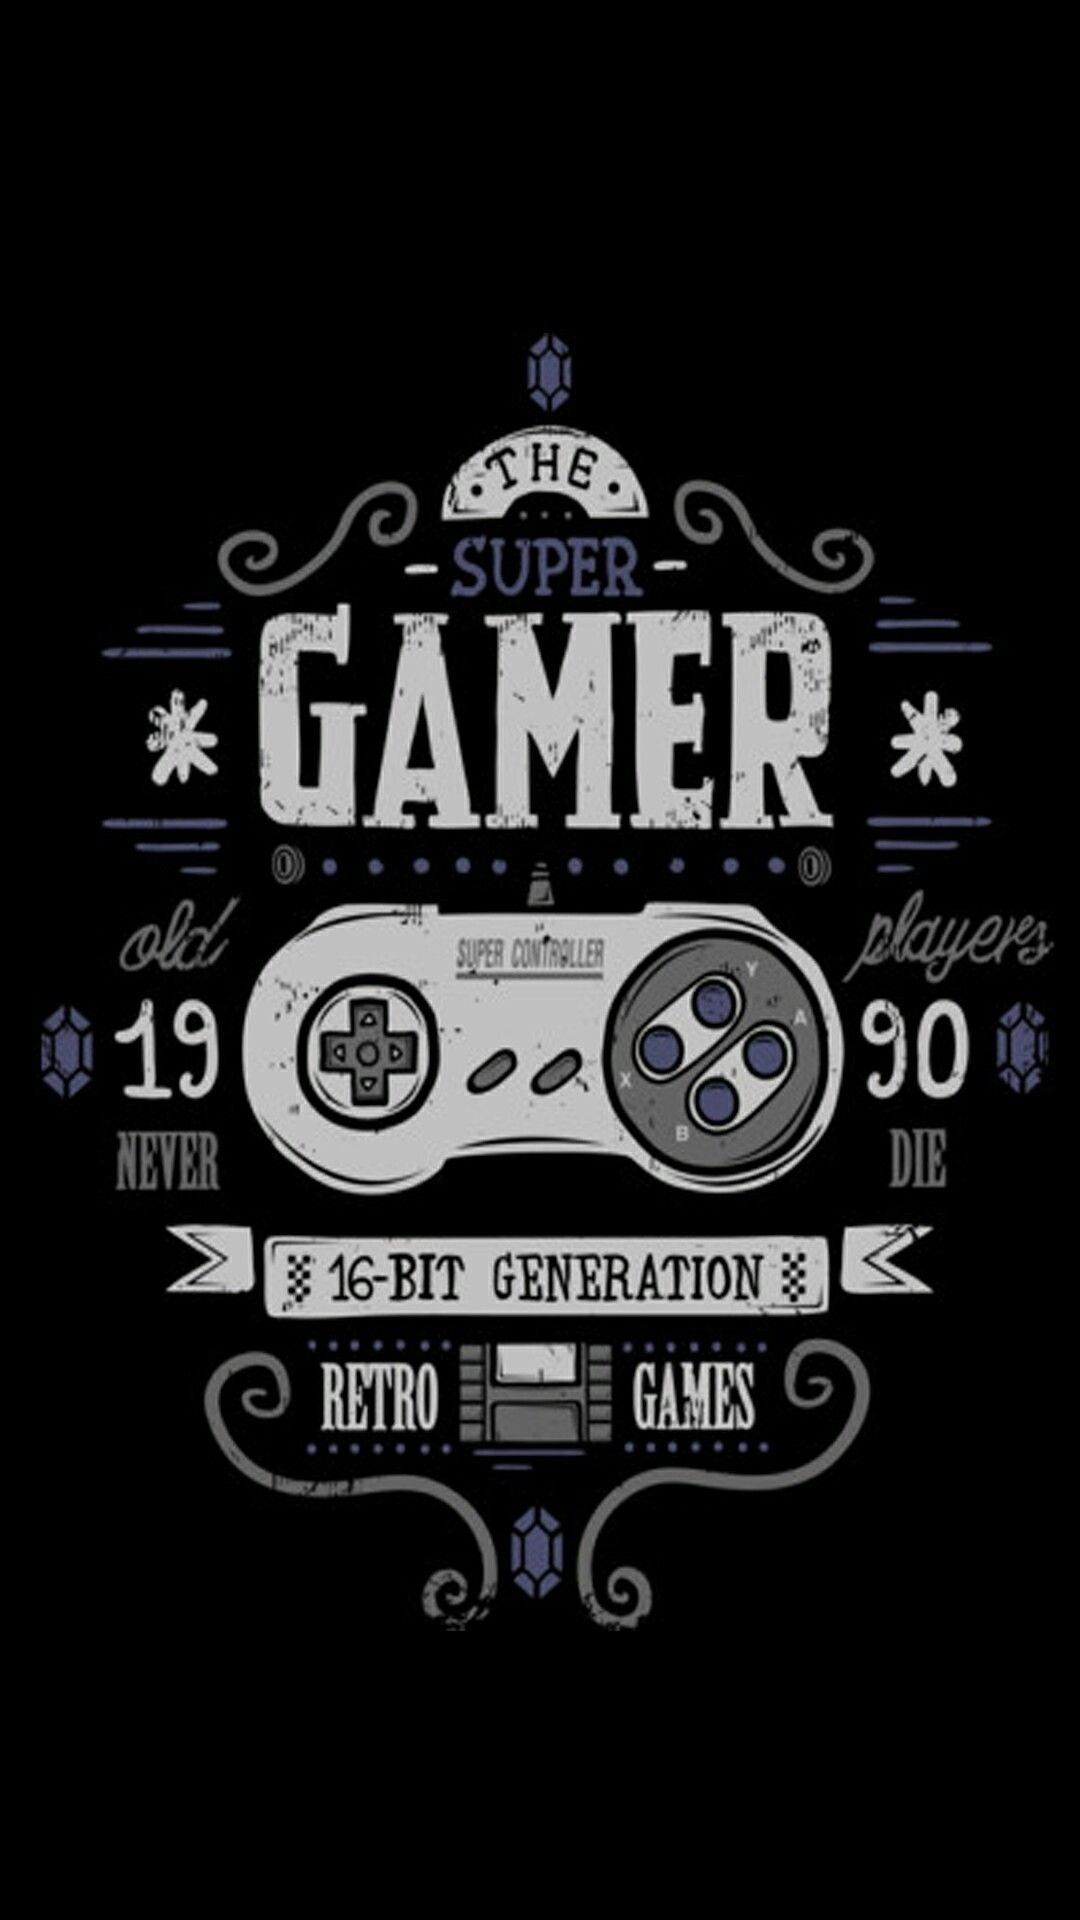 Gaming Iphone Wallpapers Top Free Gaming Iphone Backgrounds Wallpaperaccess